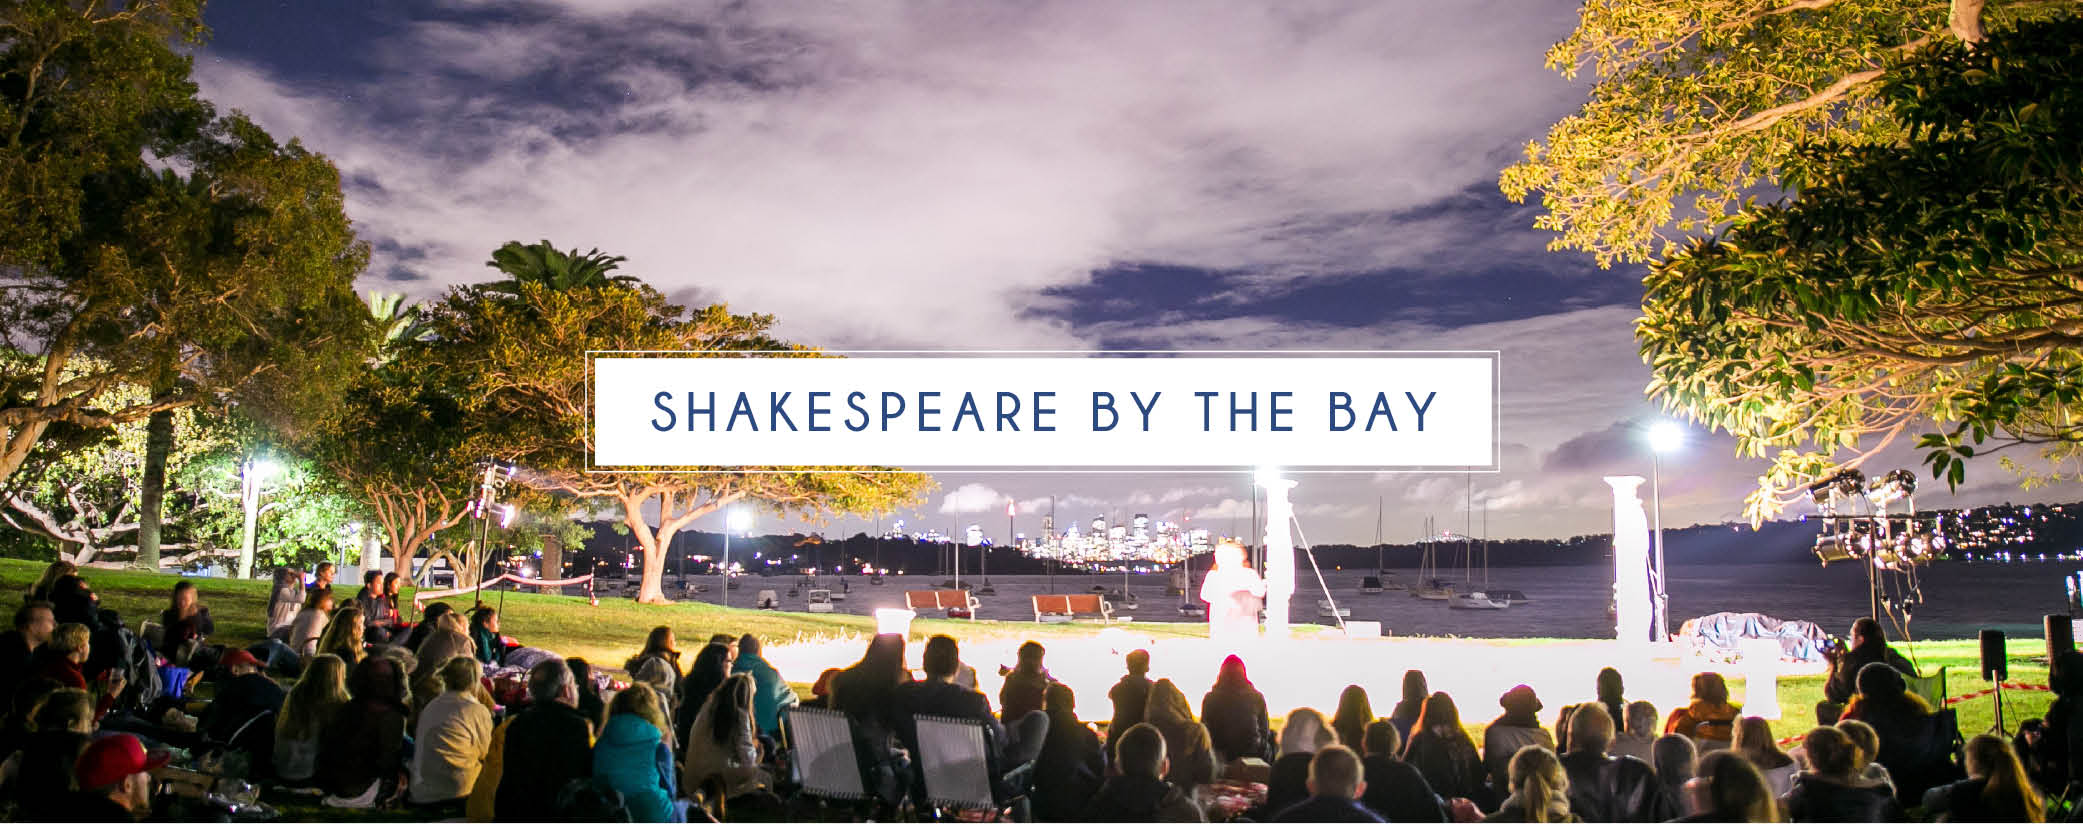 Tickets for Shakespeare by the Bay in Watsons Bay from Ticketbooth